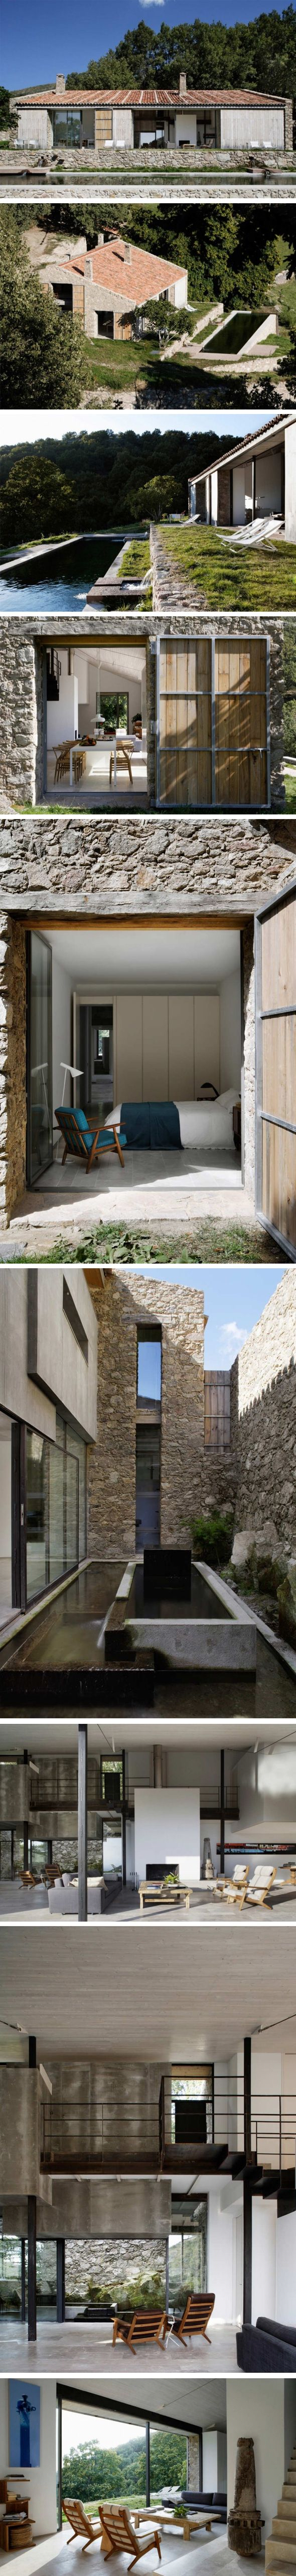 Estate-in-Extremadura-Abaton-Architects-2